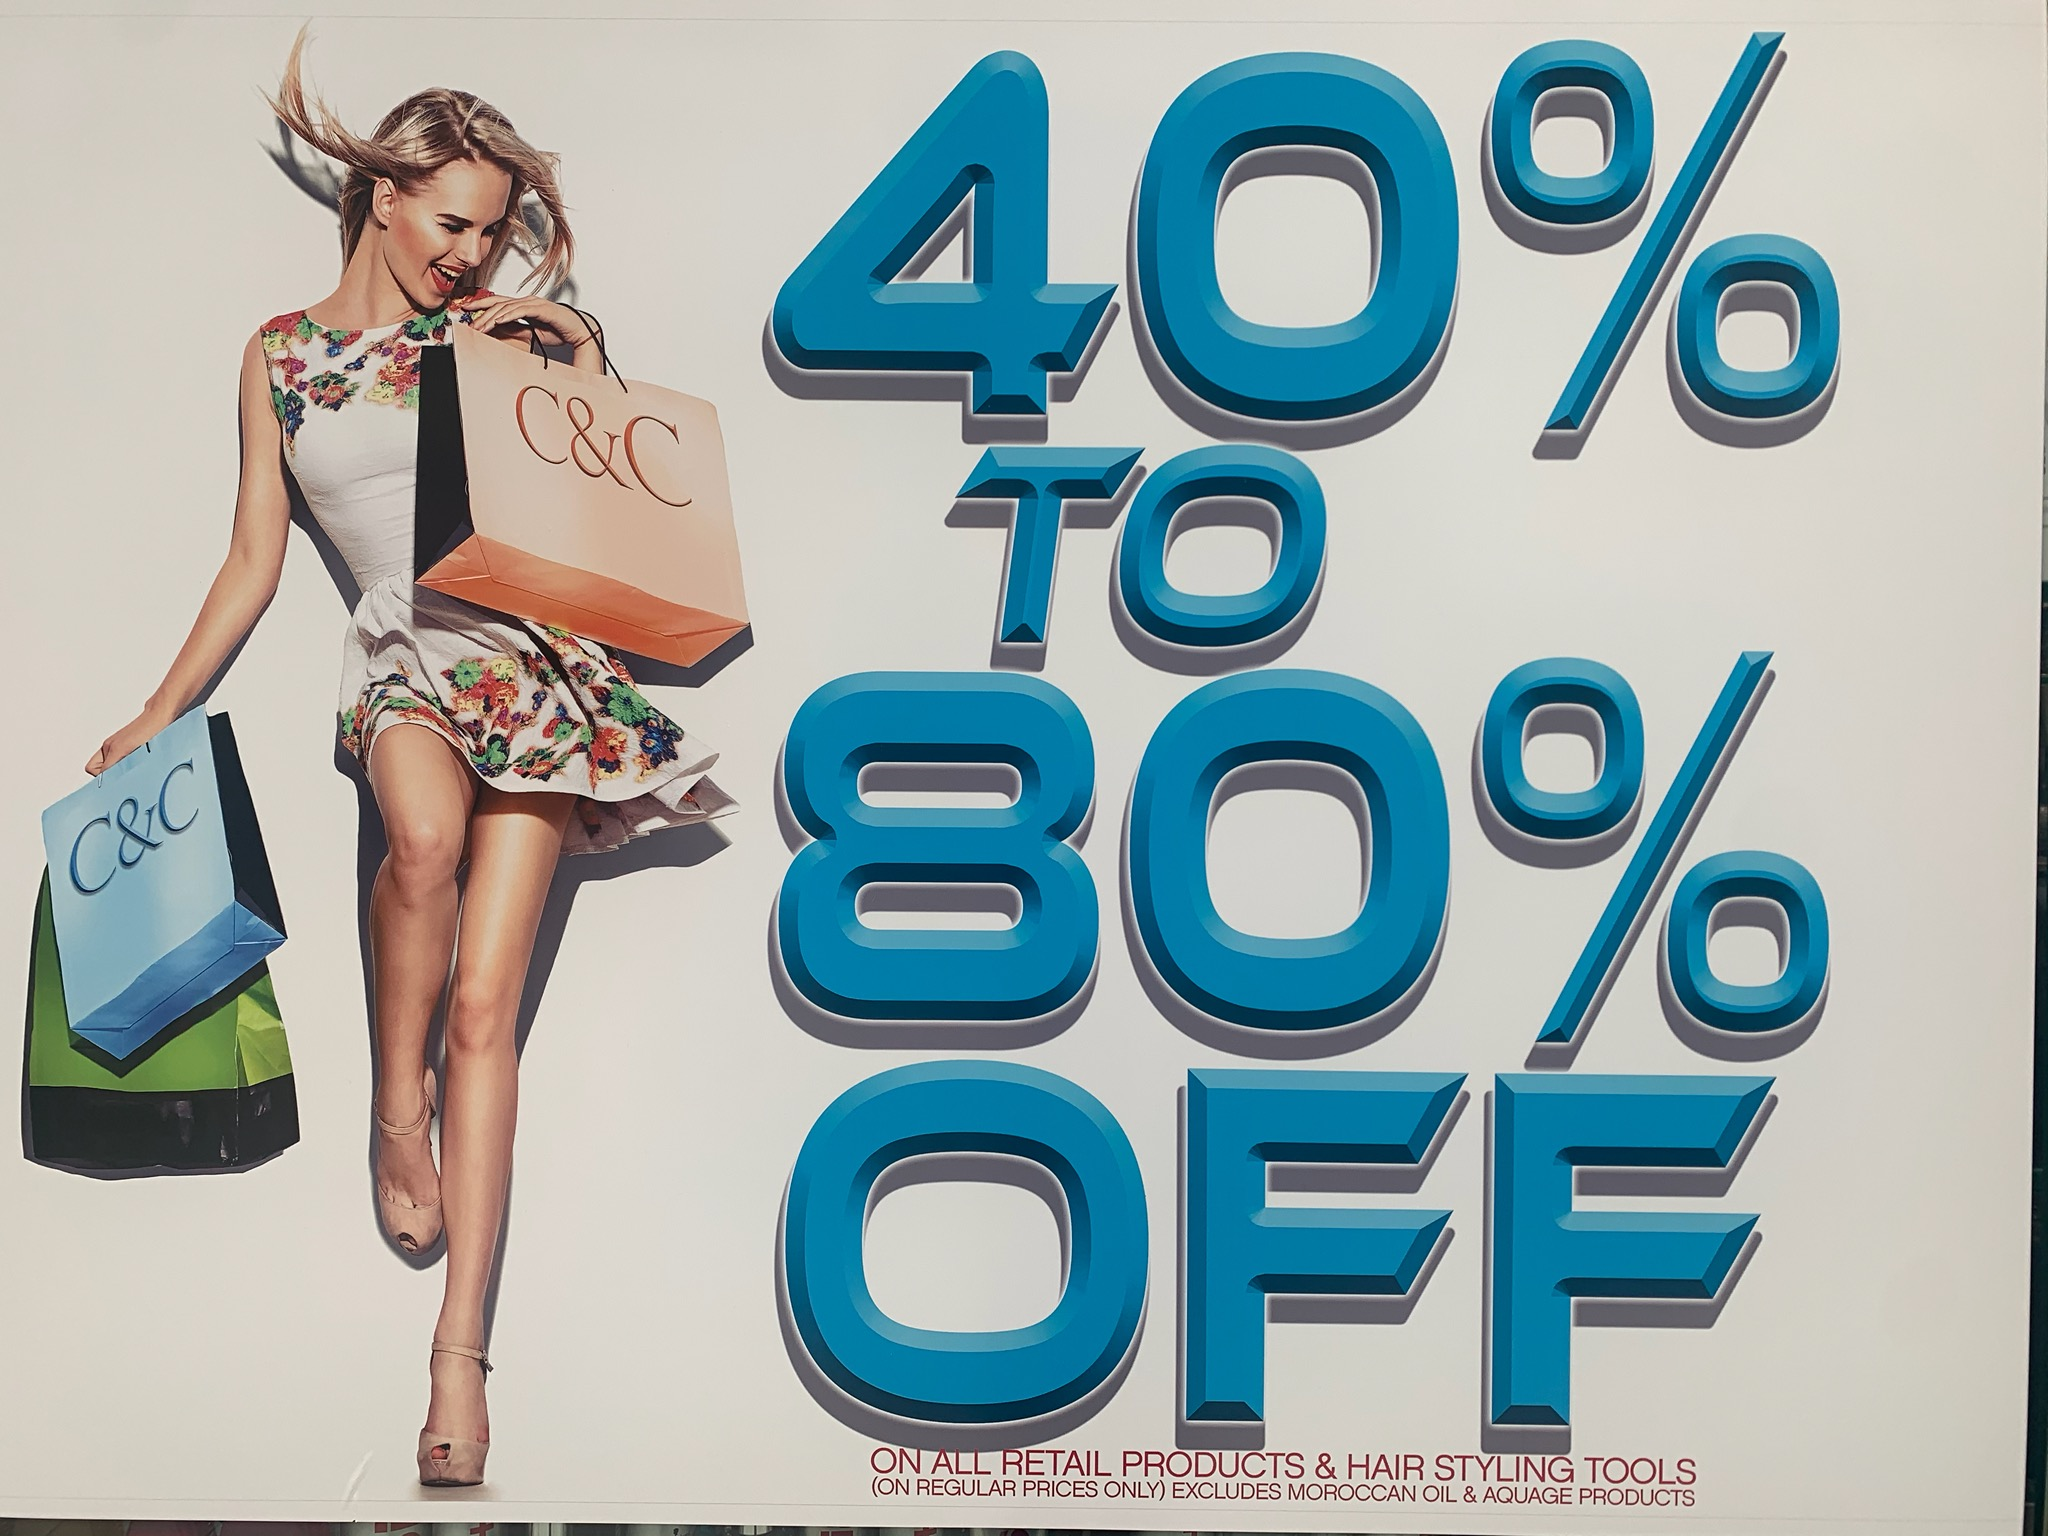 sale on retail products